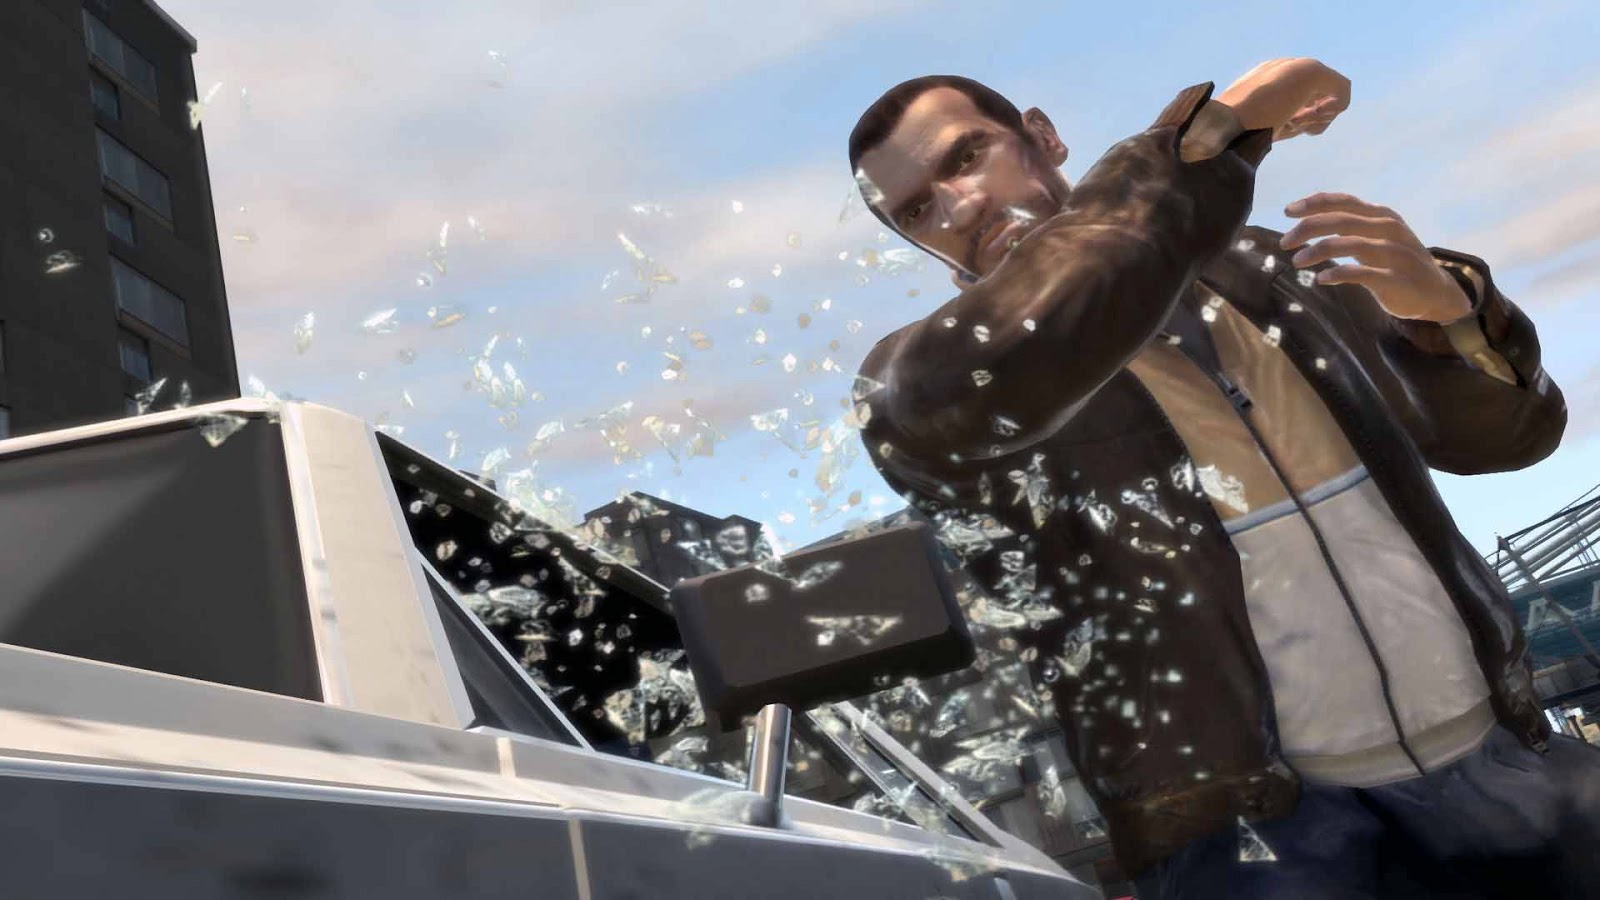 HD Wallpapers 87: Gta iv HD Wallpapers